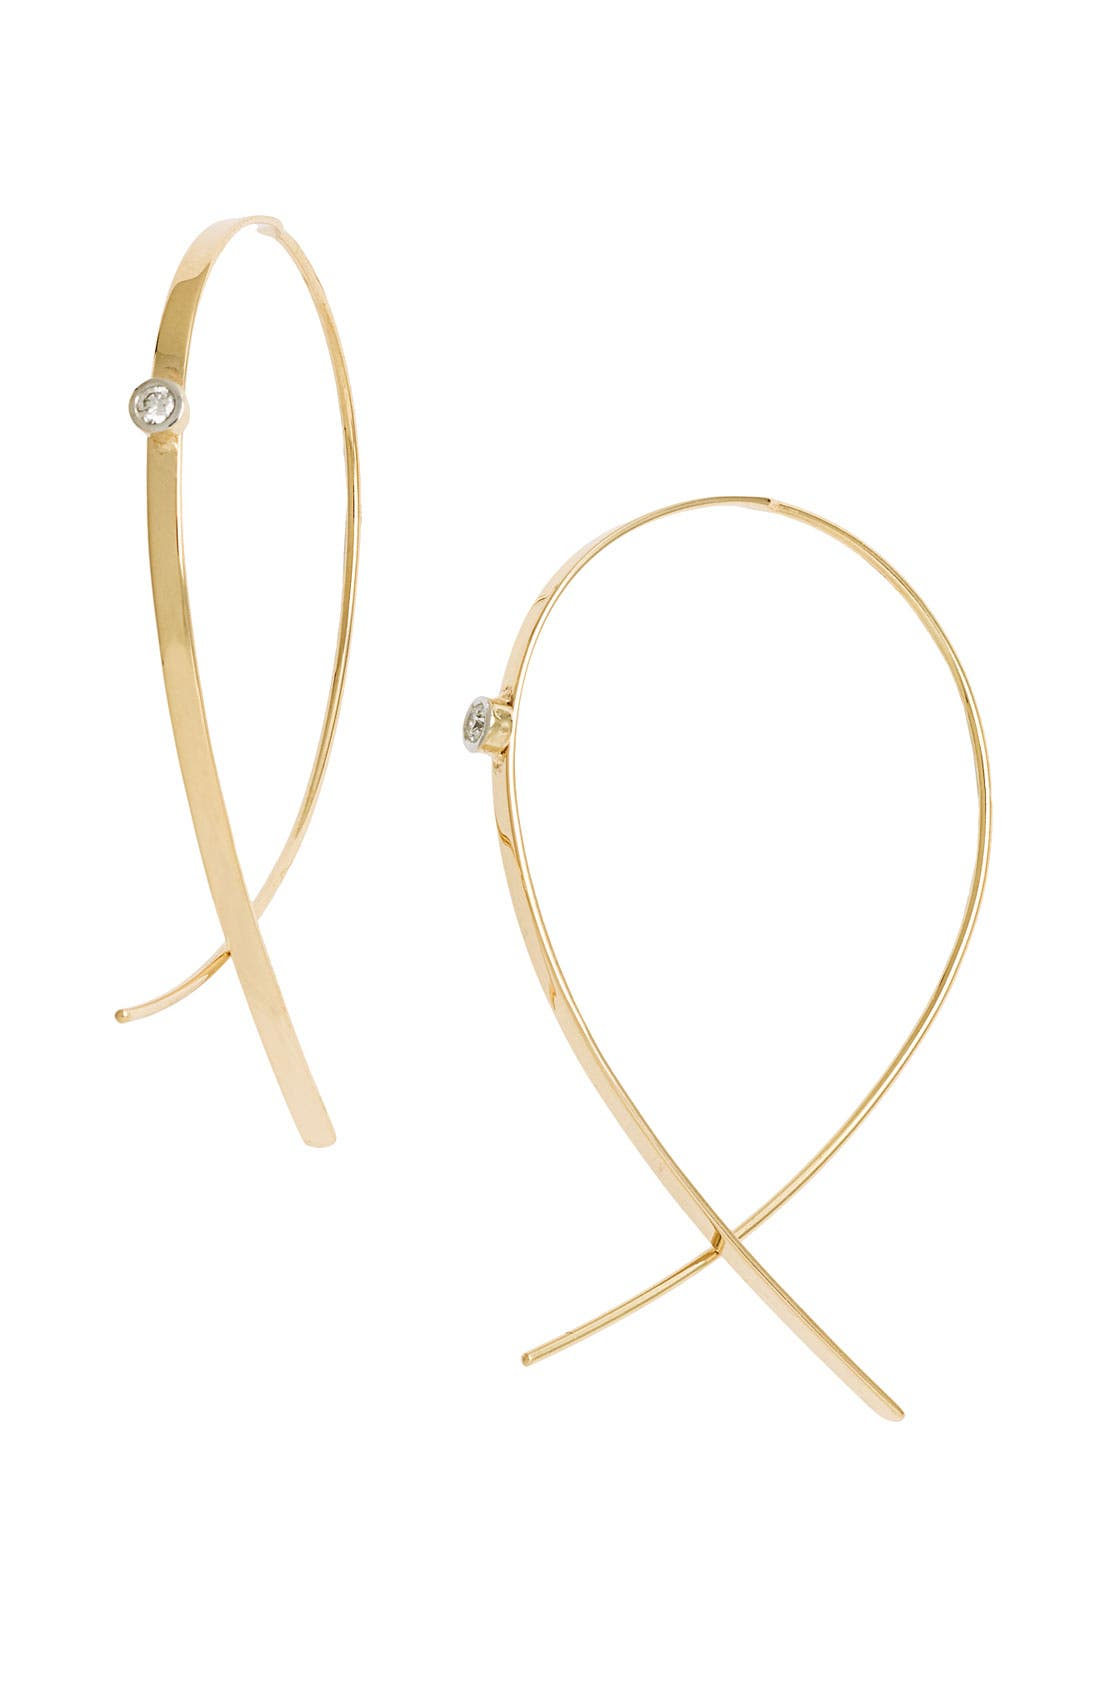 'Small Upside Down' Diamond Hoop Earrings,                             Main thumbnail 1, color,                             YELLOW GOLD